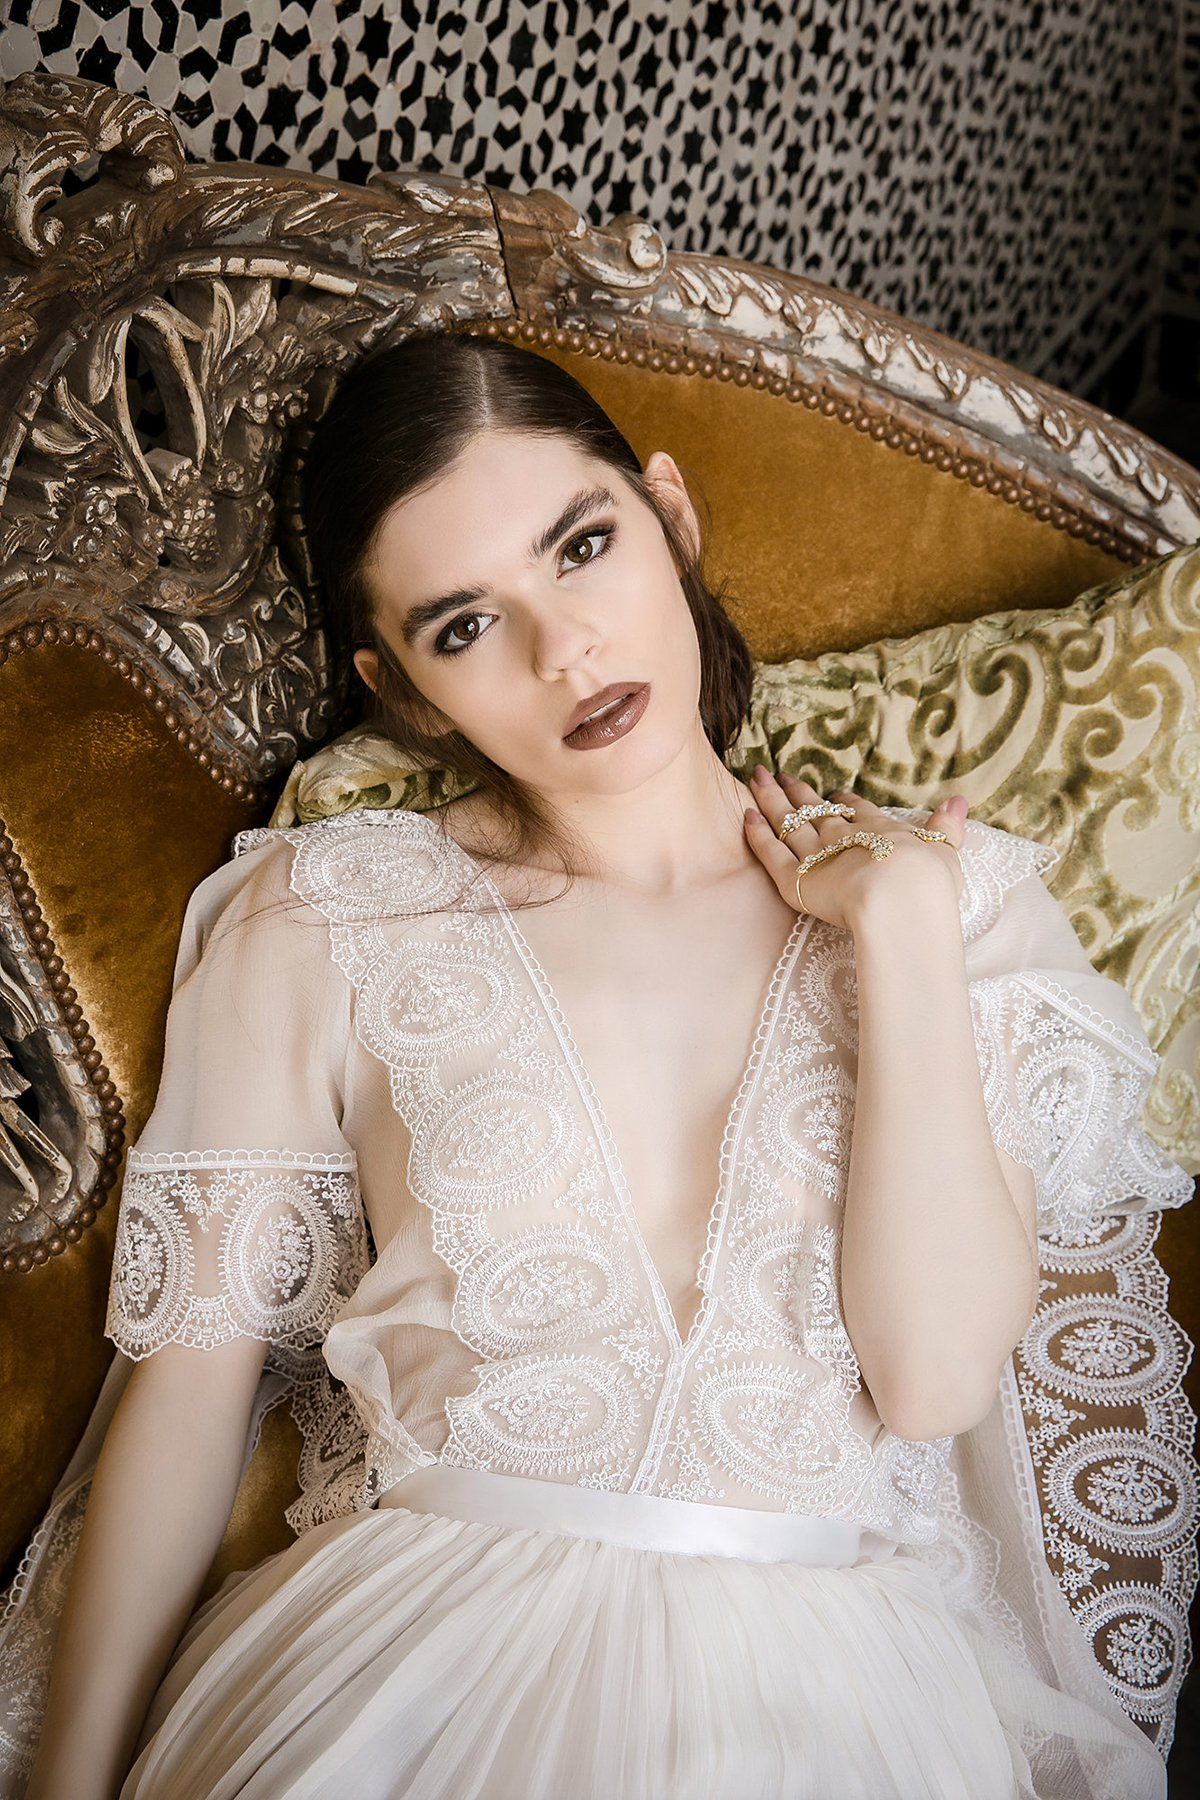 Marrakesh Photo Shoot Collaboration with Bridal Wear Designer Eva Poleschinski